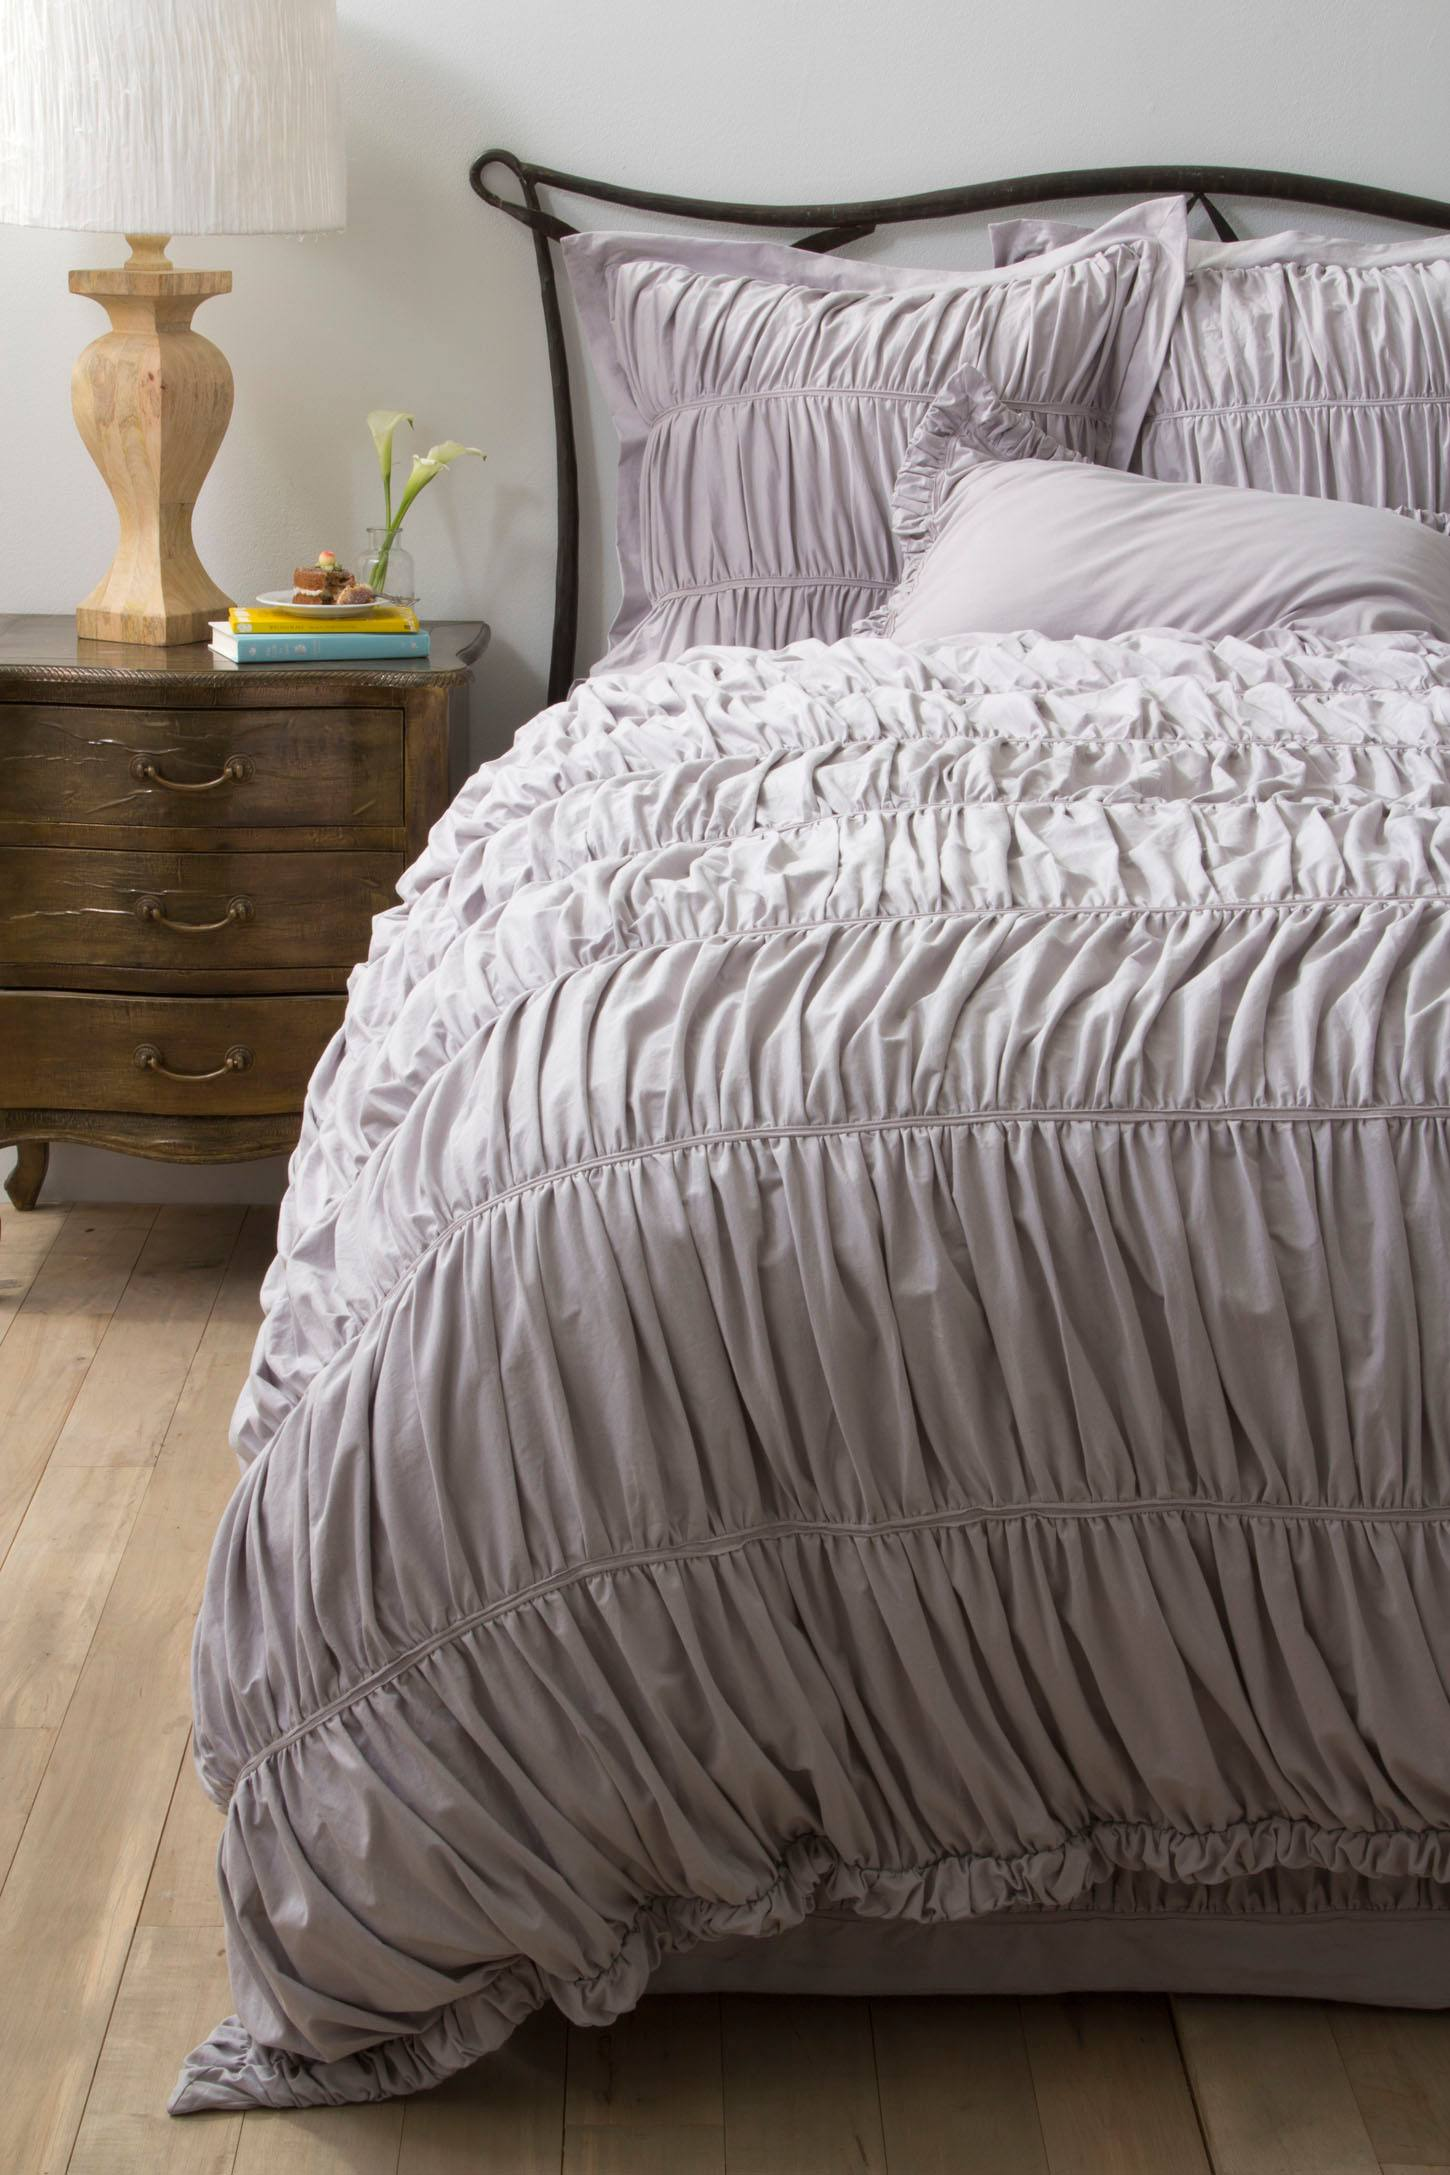 Anthropologie bedding - Anthropologie Bedding 14